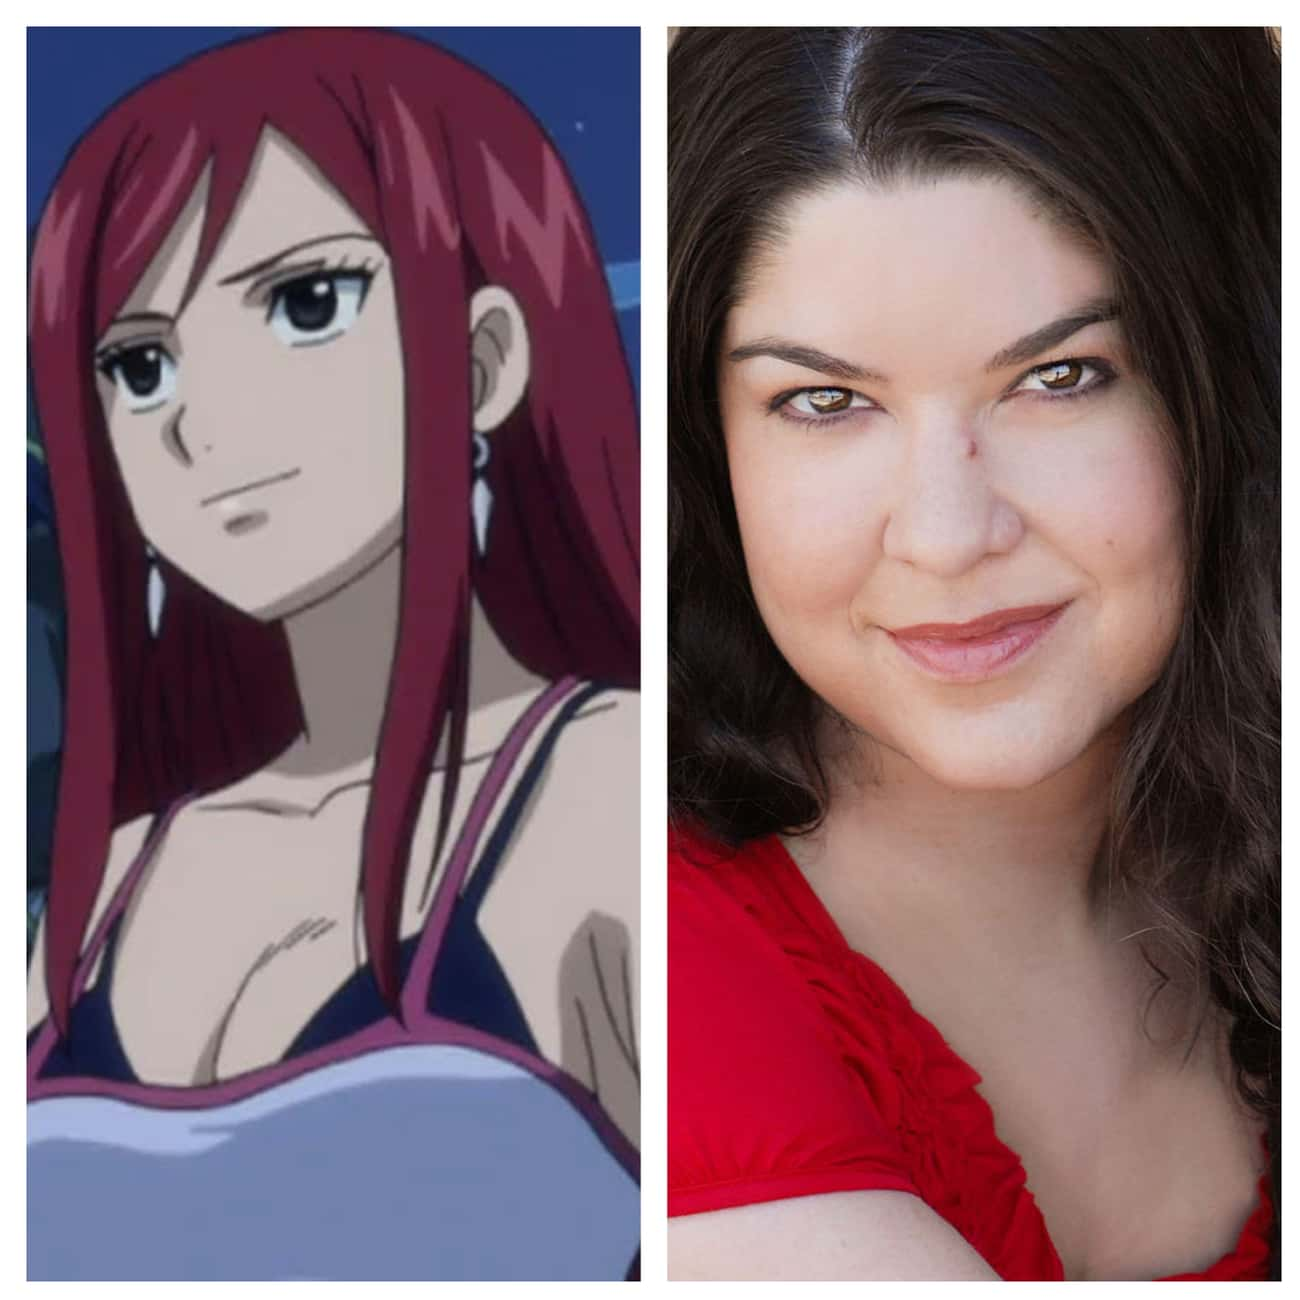 Colleen Clinkenbeard is listed (or ranked) 2 on the list The 15 Greatest English Anime Voice Actors Of All Time